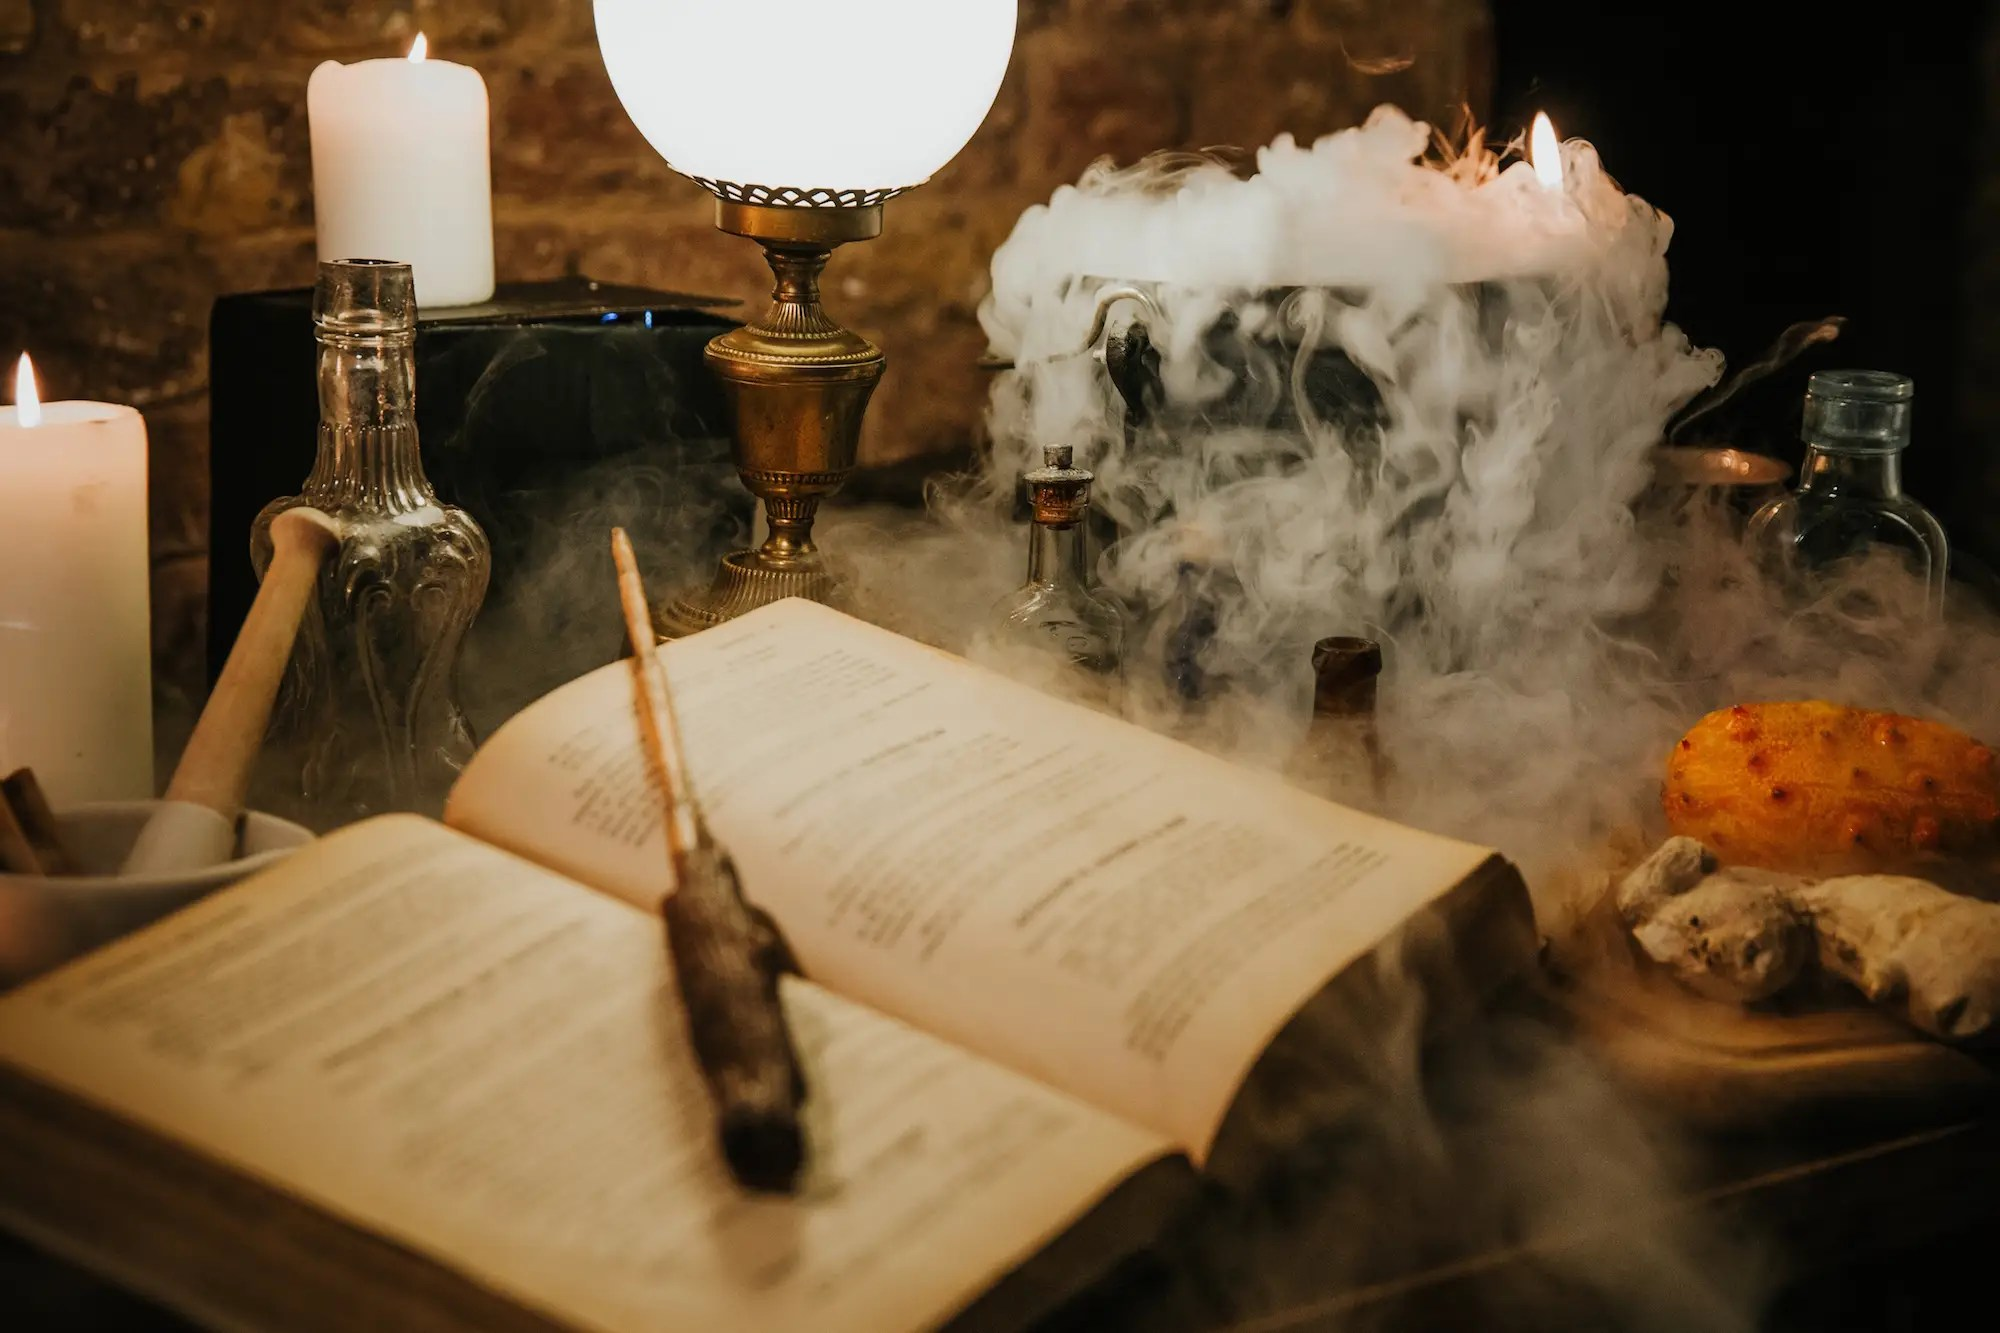 Harry Potter Inspired Potions Class With Wands And Alcohol